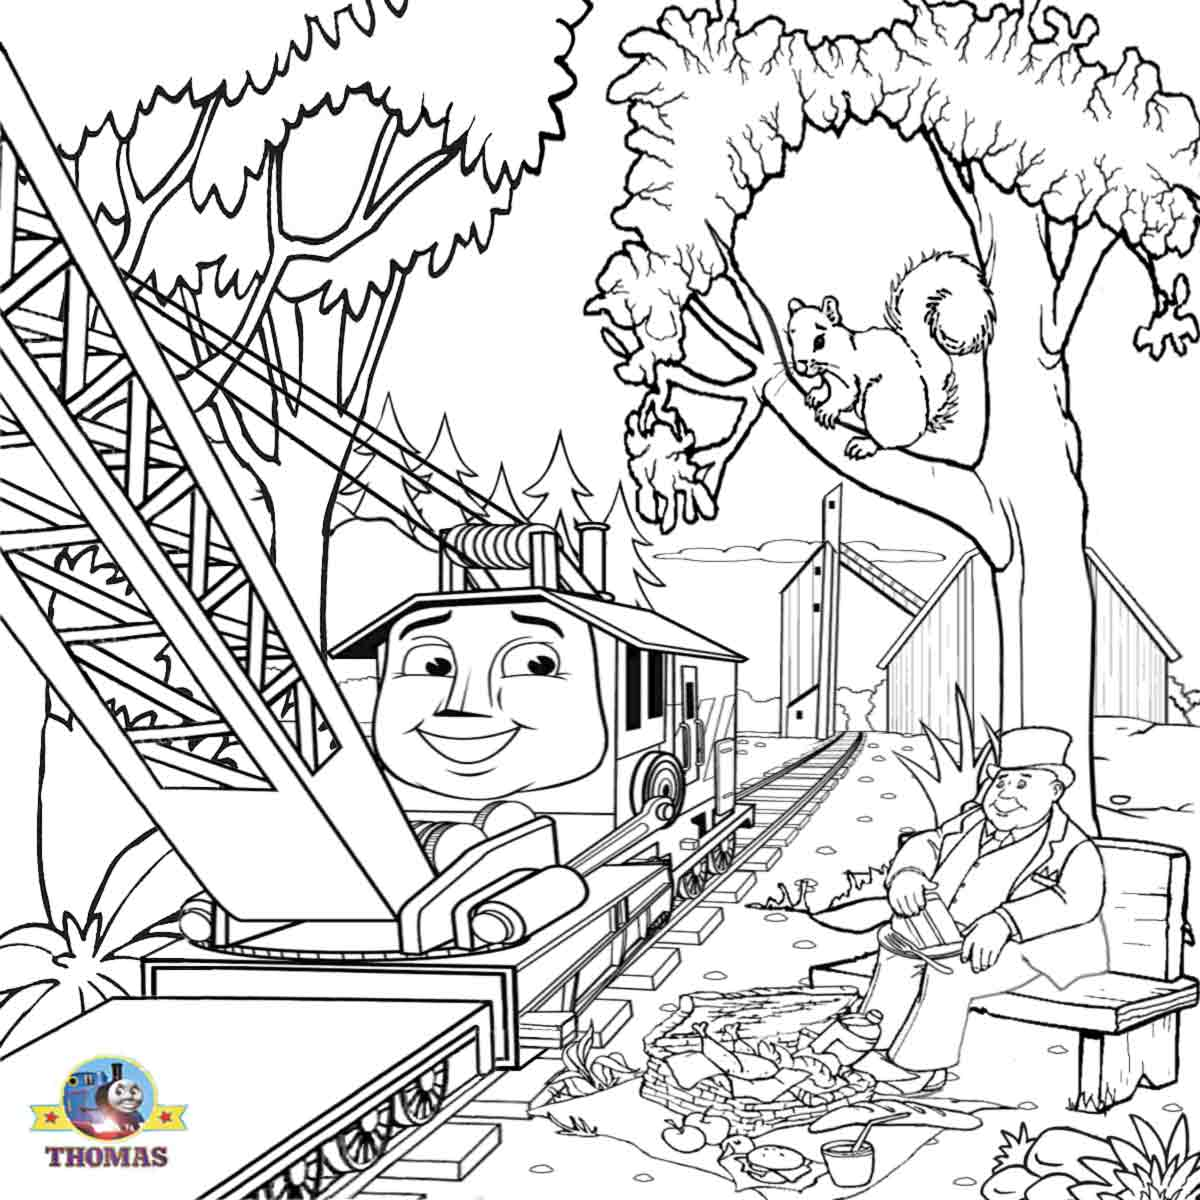 Free coloring pages printable pictures to color kids for Thomas the train color page